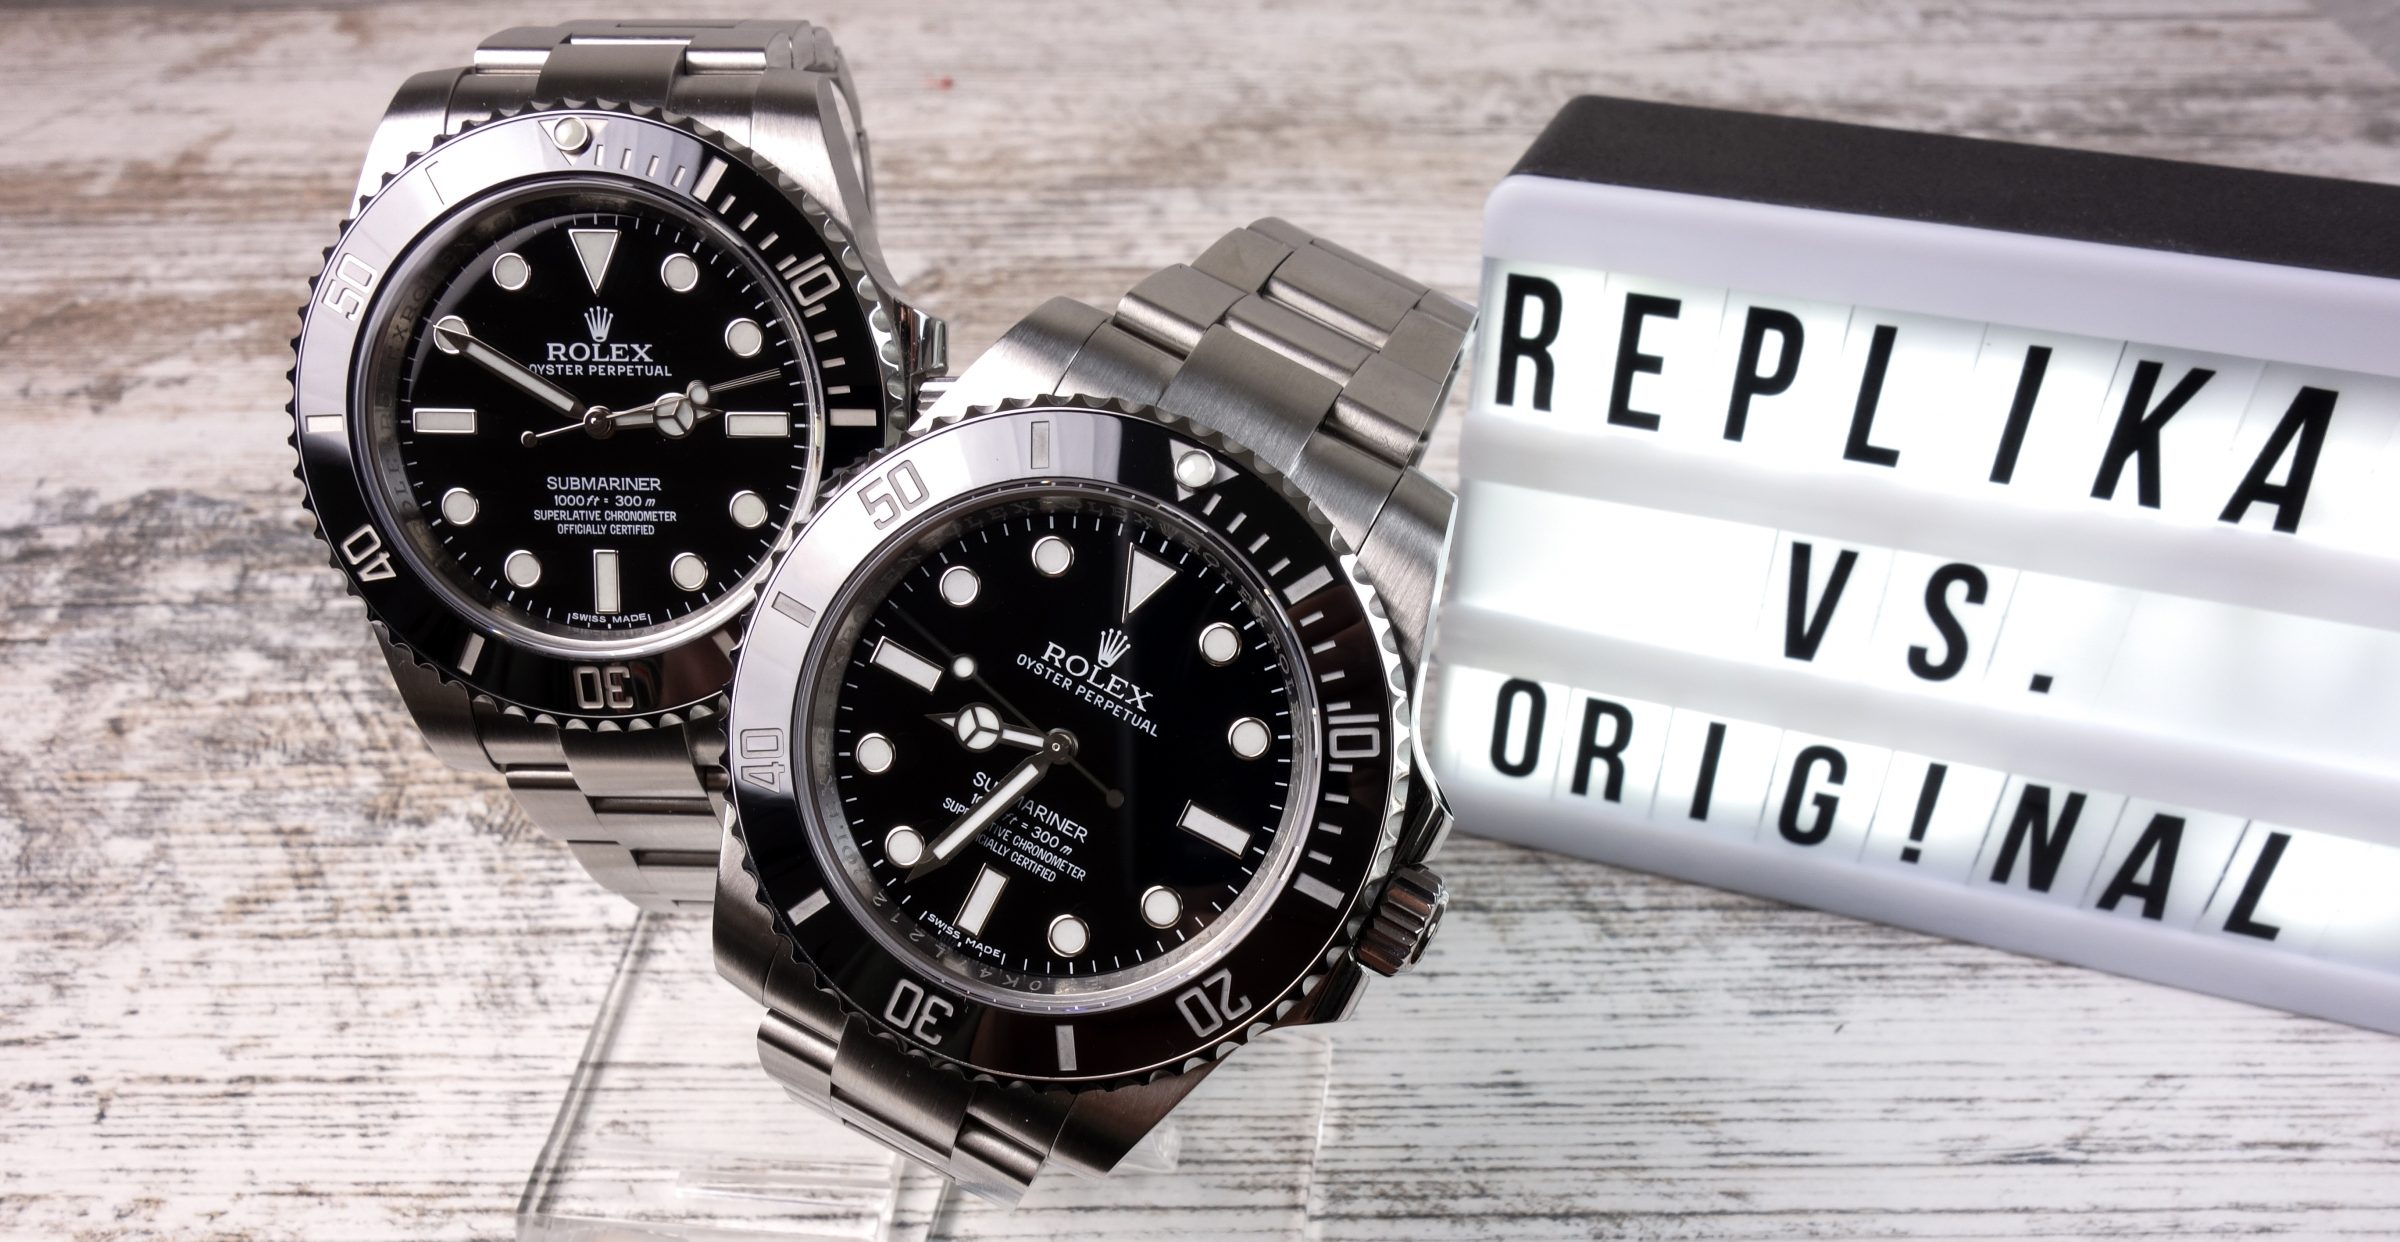 Rolex Submariner Original vs. Replica